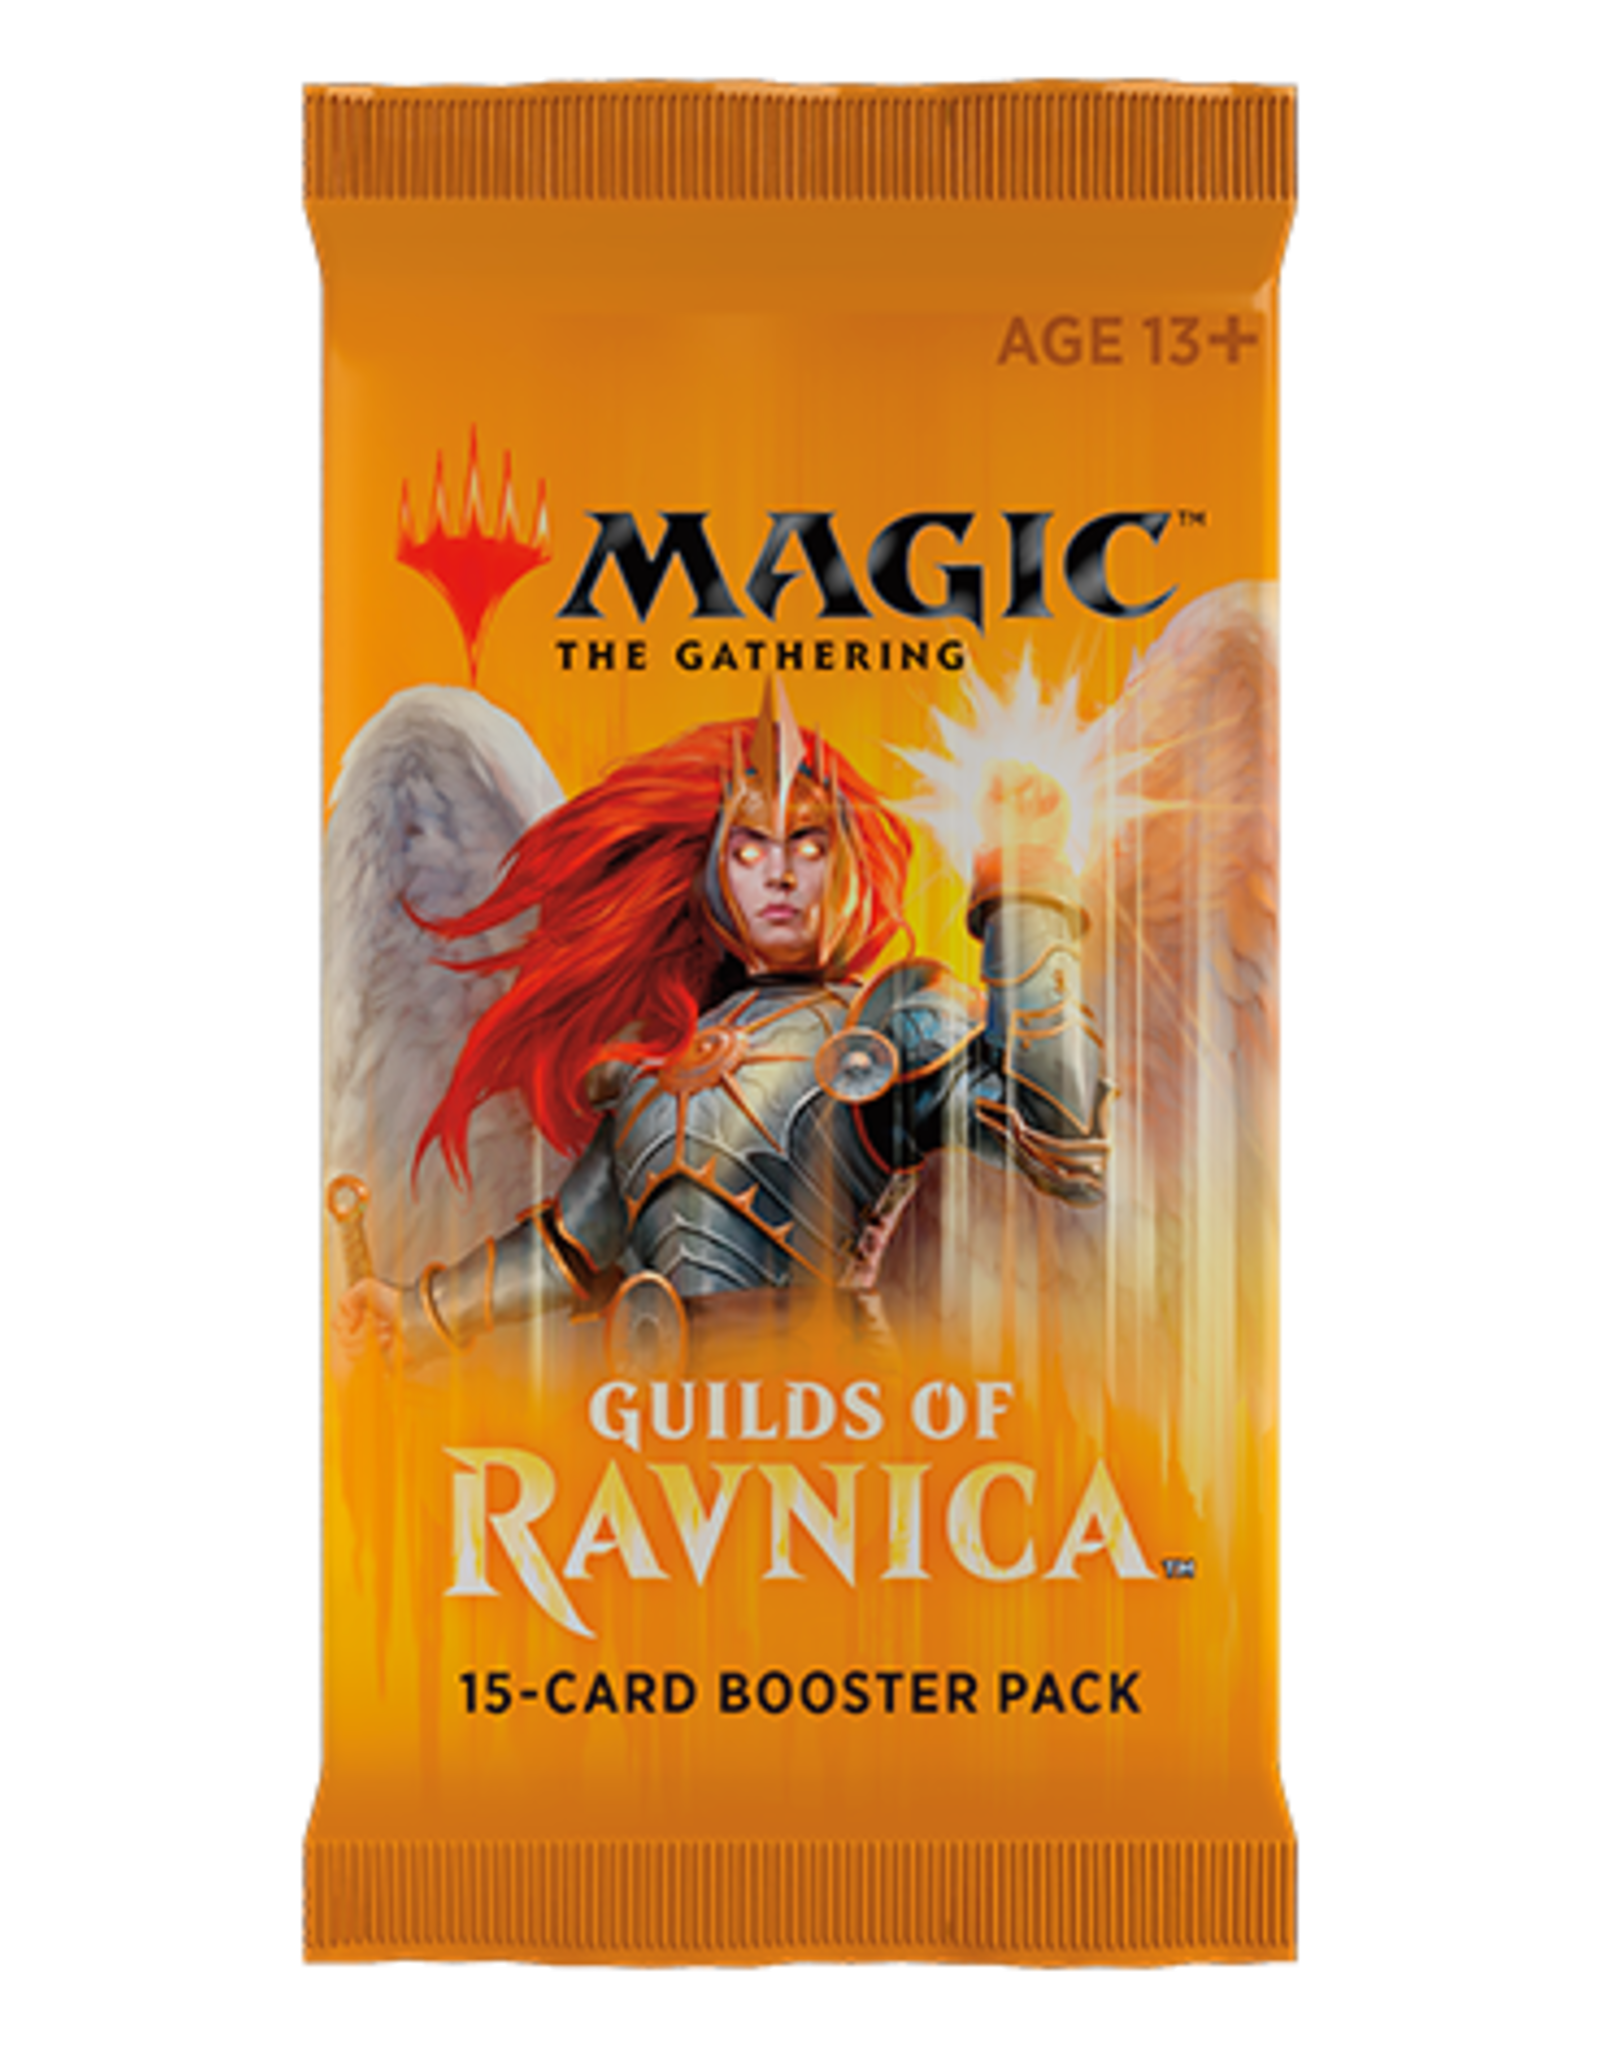 Magic: The Gathering Magic: The Gathering - Guilds of Ravnica Booster Pack